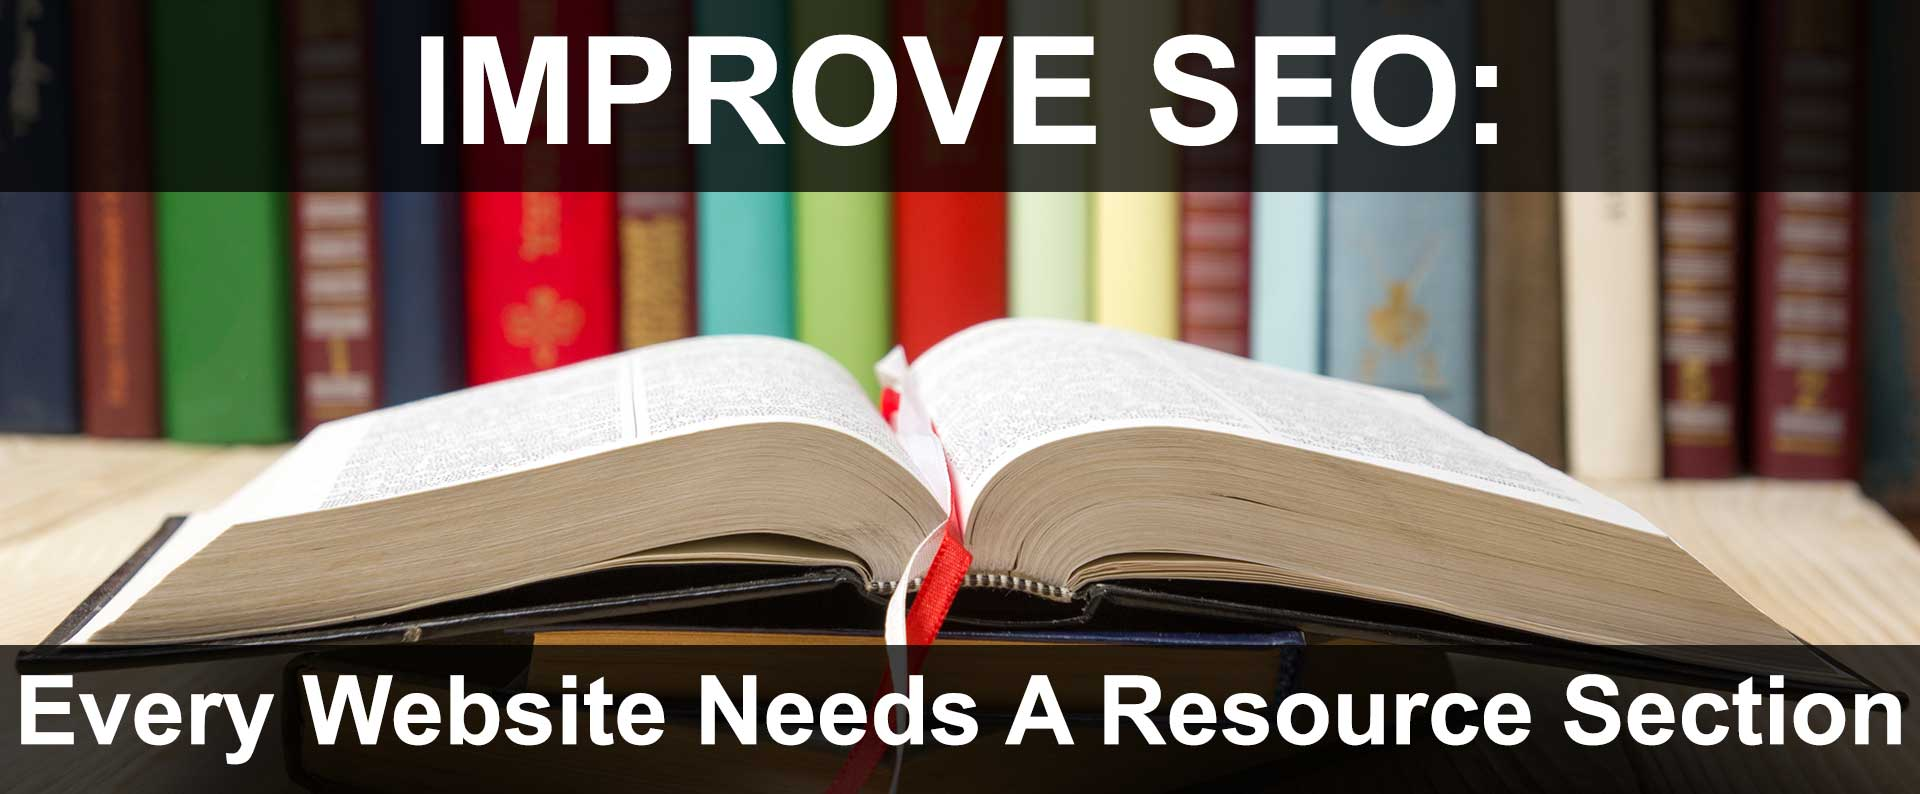 The Benefits of Providing Online Resources For Customers & SEO